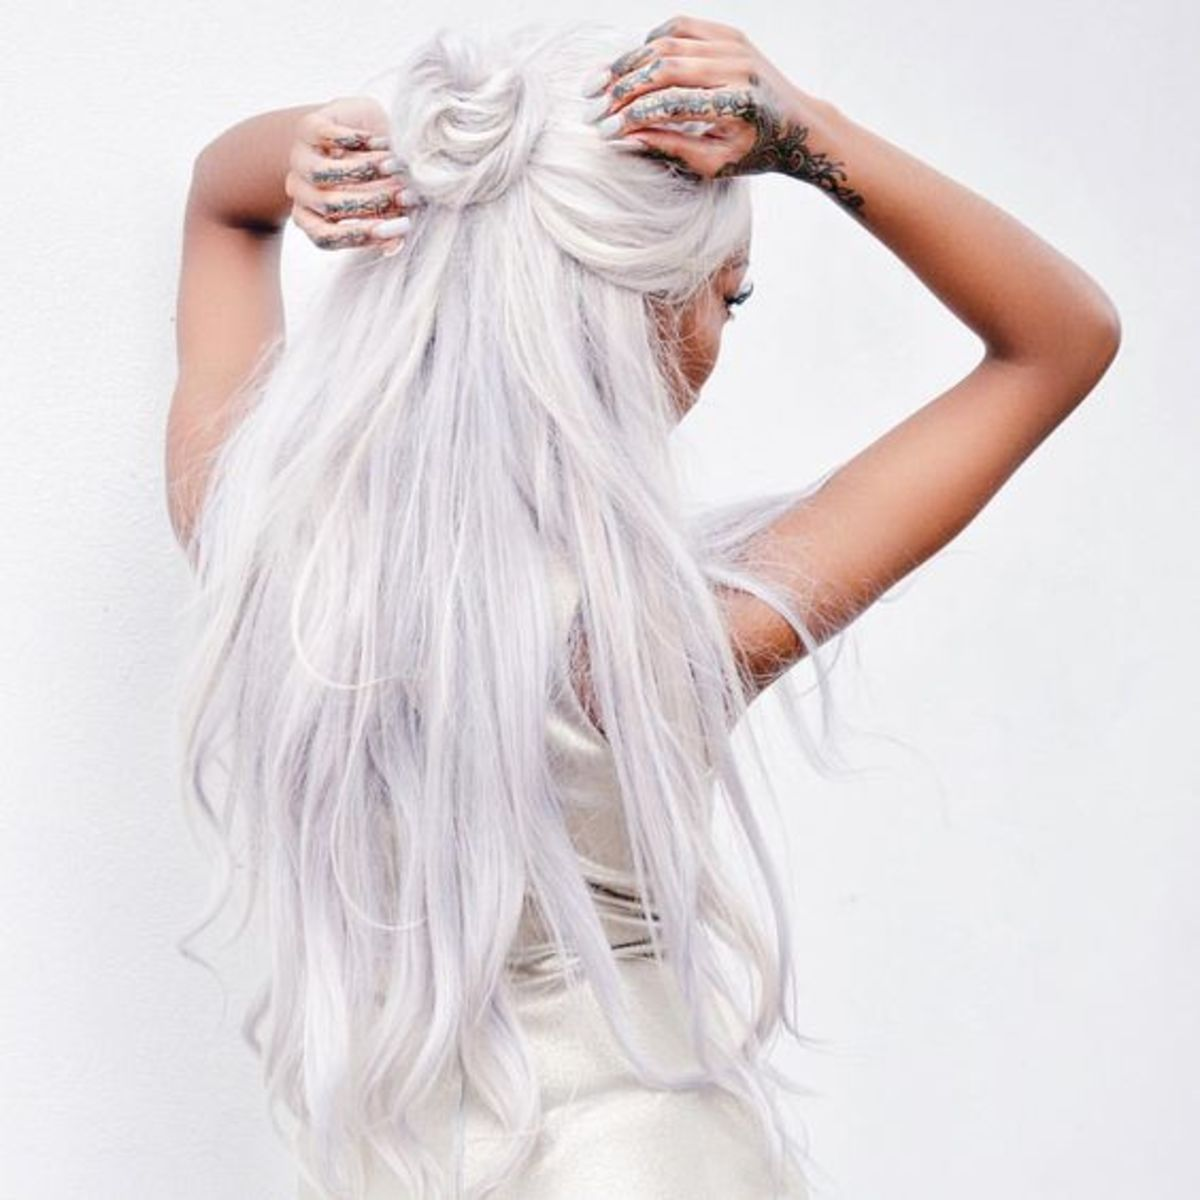 White hair is a unique and eye-catching look!